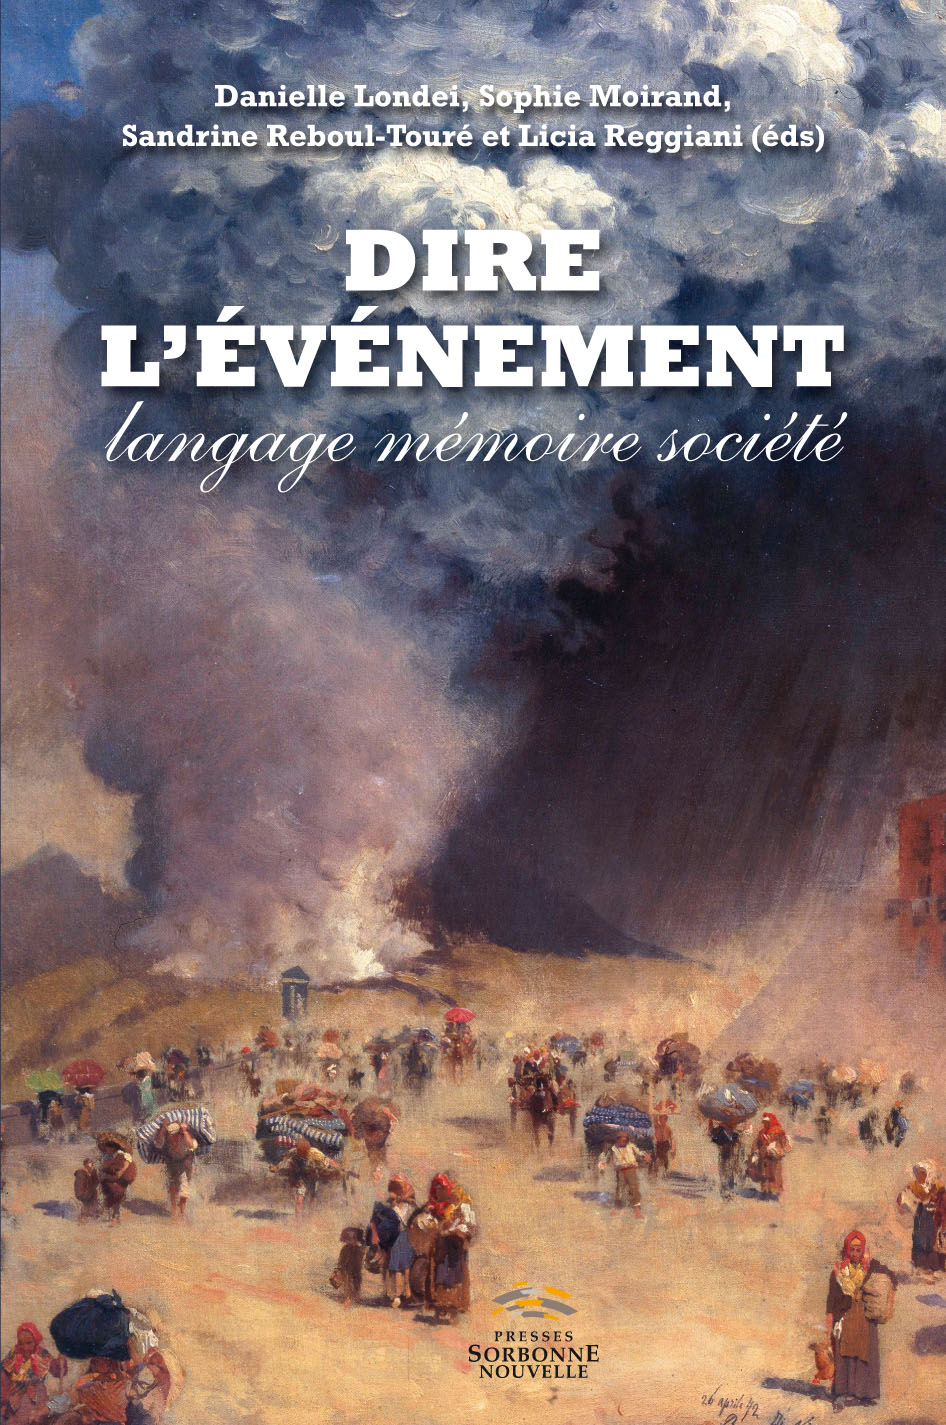 dire_levenement_couverture.jpg